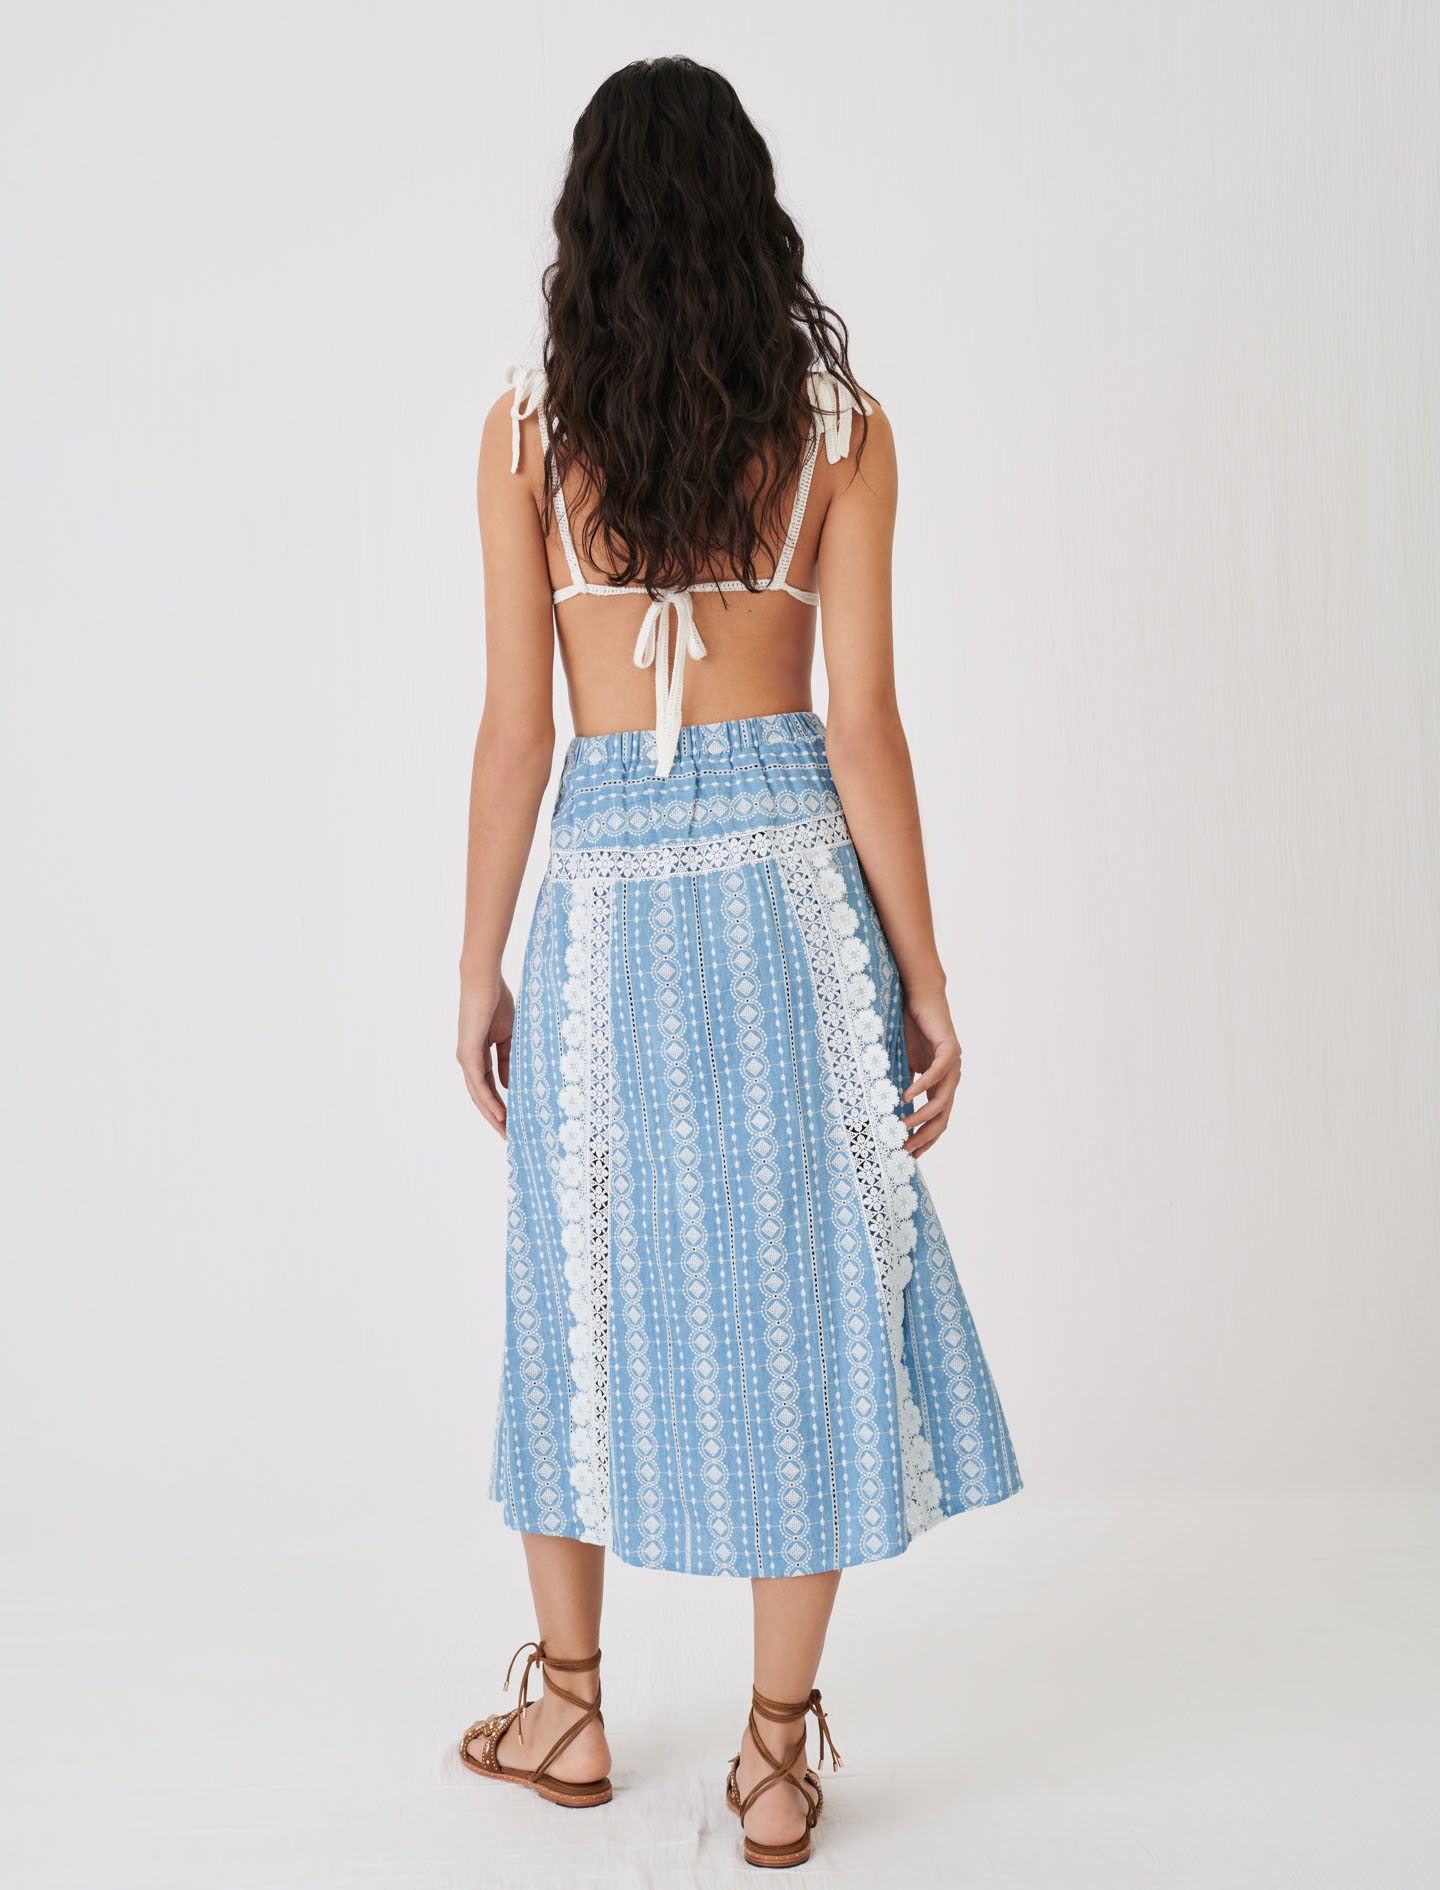 Skirt with contrasting trims